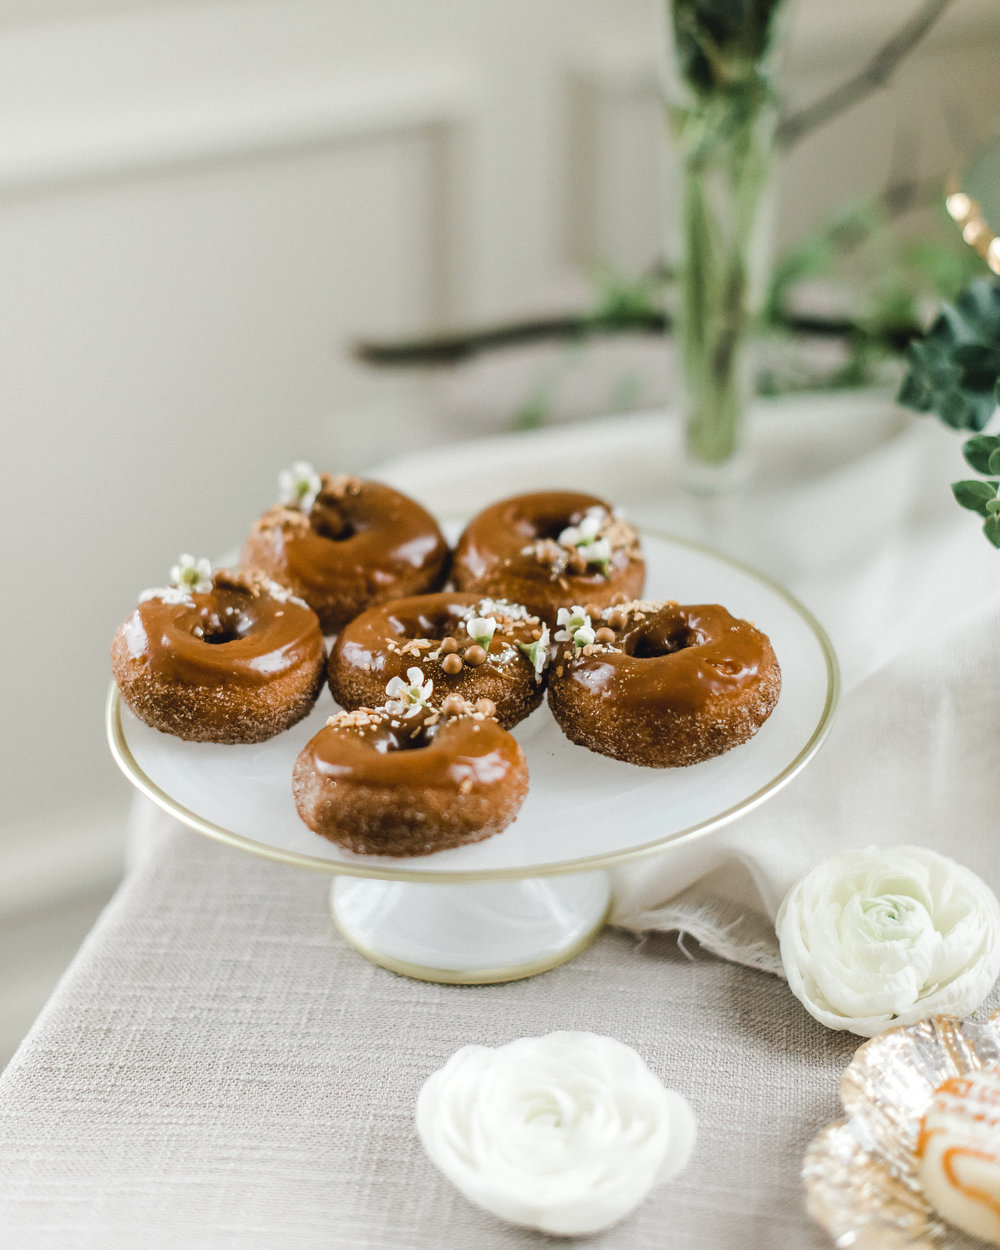 Charming wedding cake and dessert table with donuts for Pablo Neruda enchanting garden styled shoot planned by Exhale Events. Get inspired at exhale-events.com!